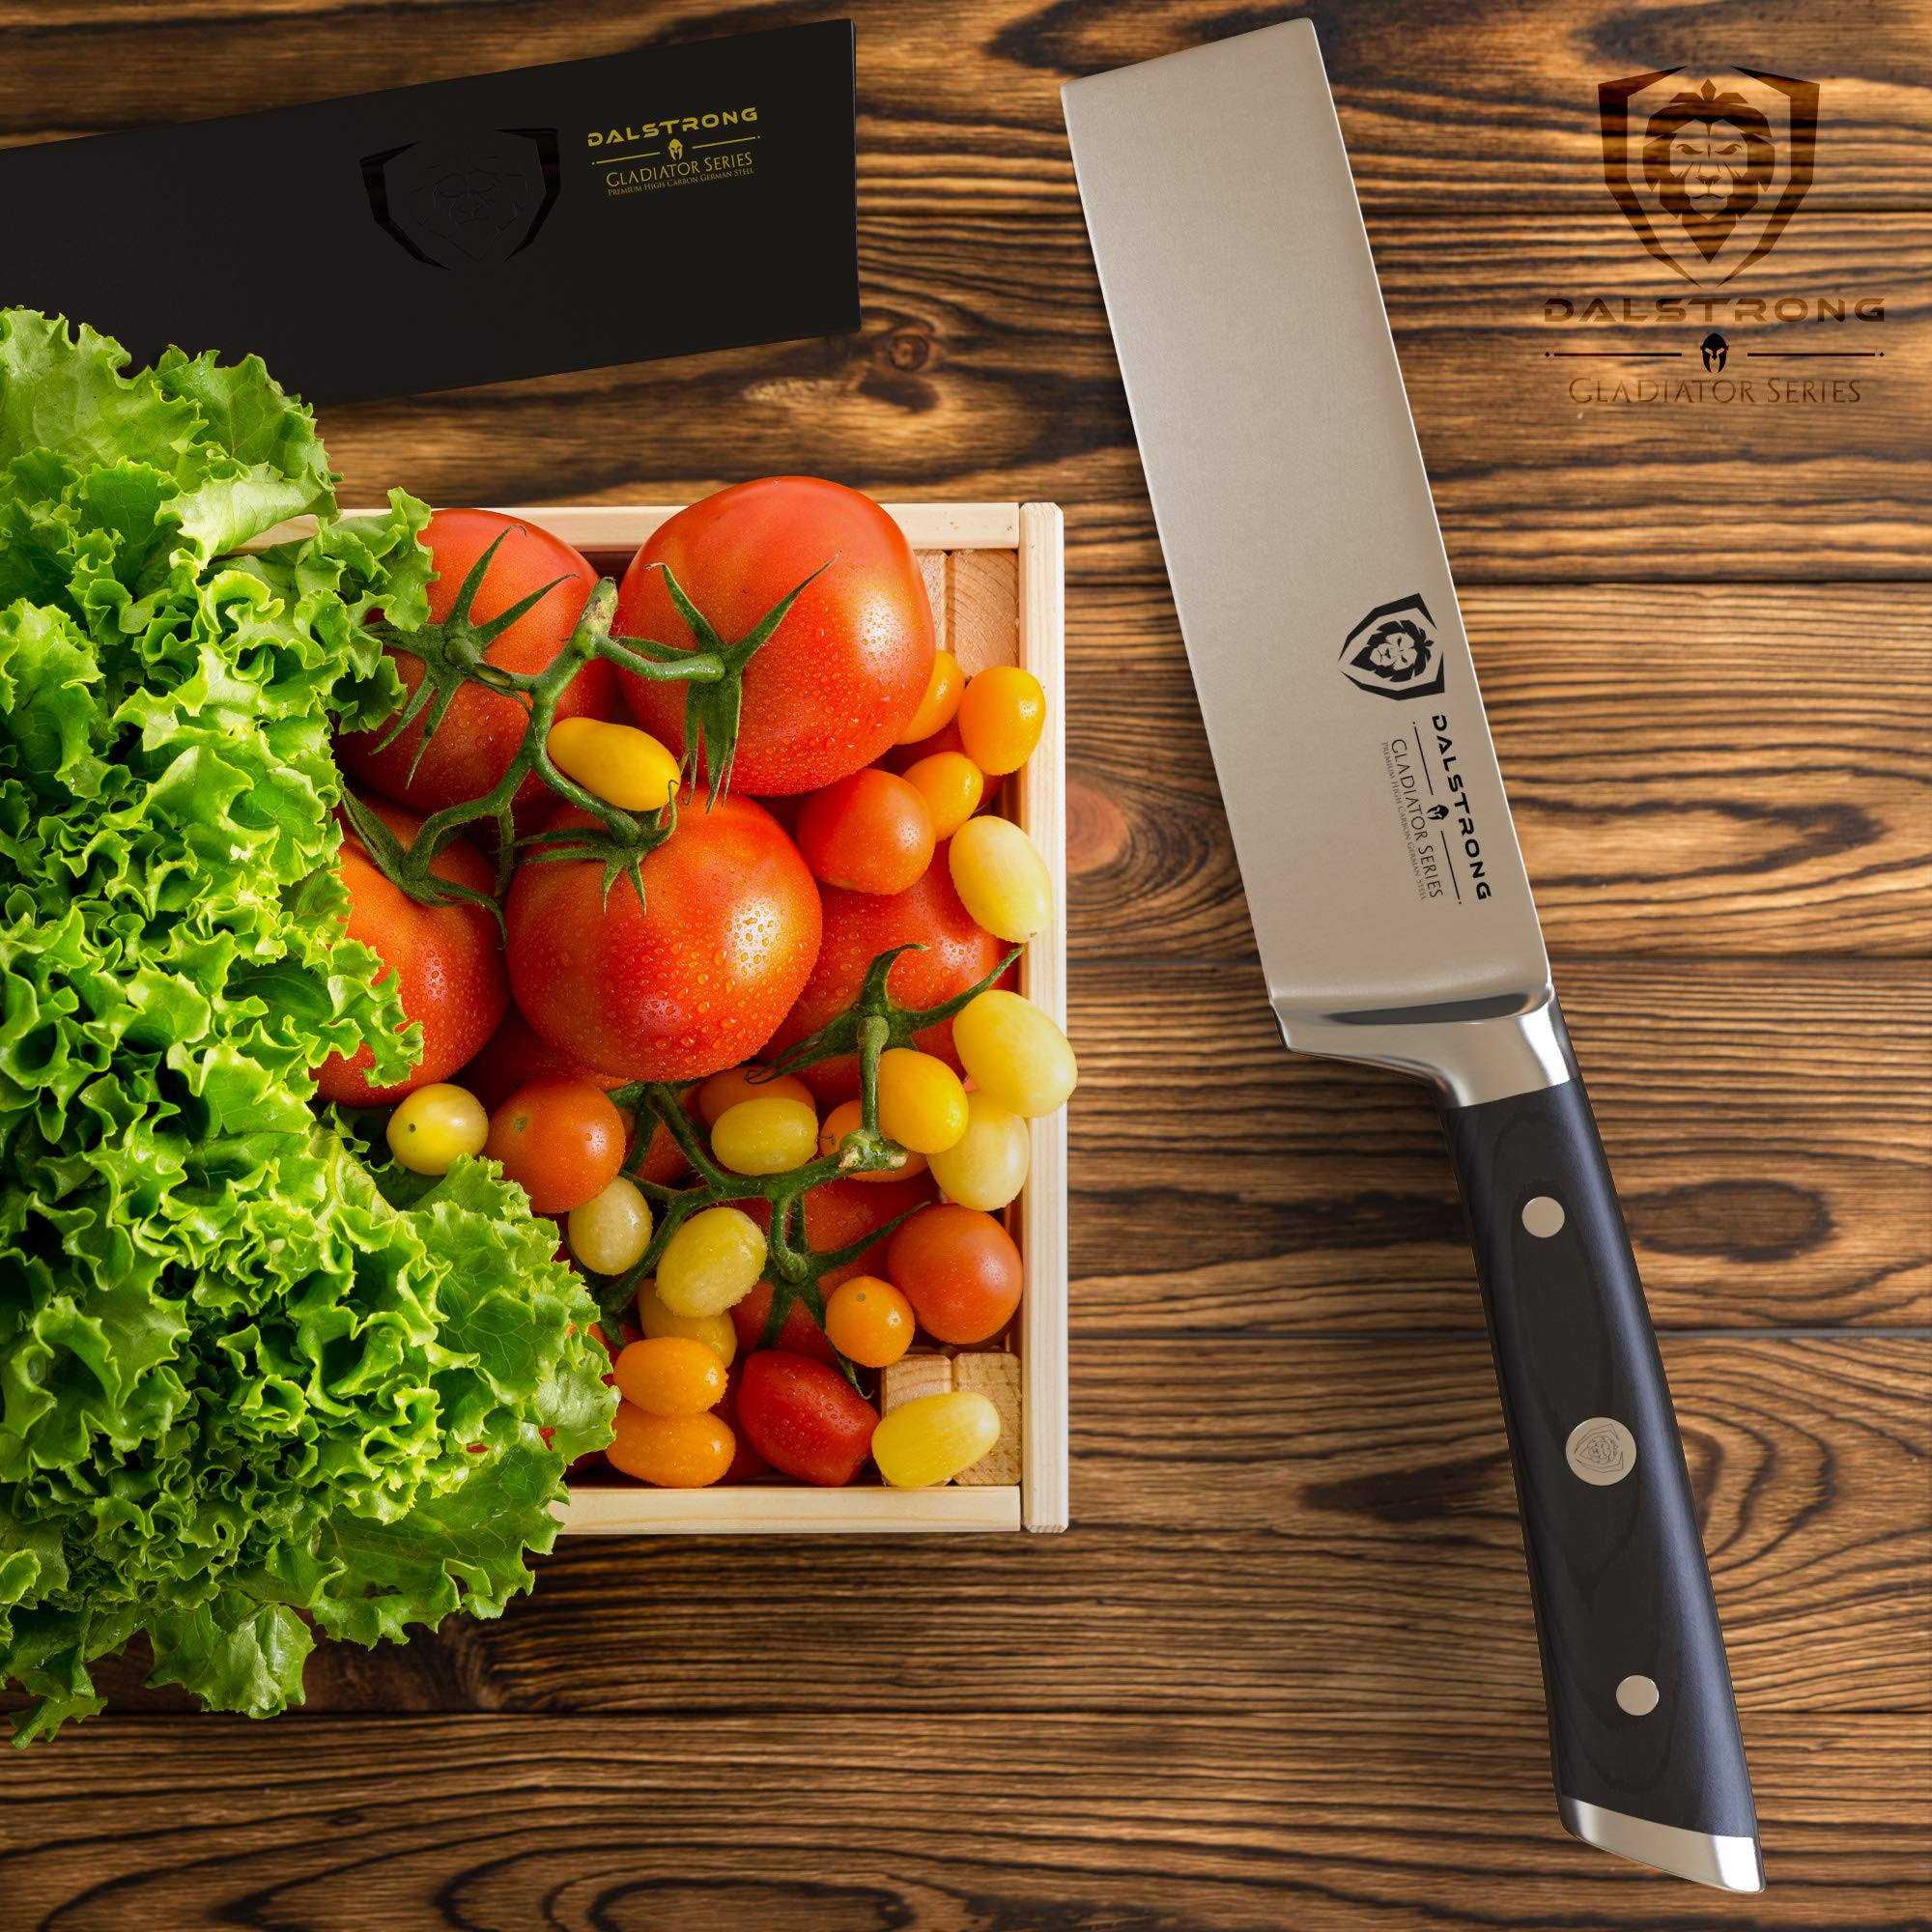 DALSTRONG Produce Knife - Gladiator Series - German HC Steel - 6'' -w/Sheath by Dalstrong (Image #4)